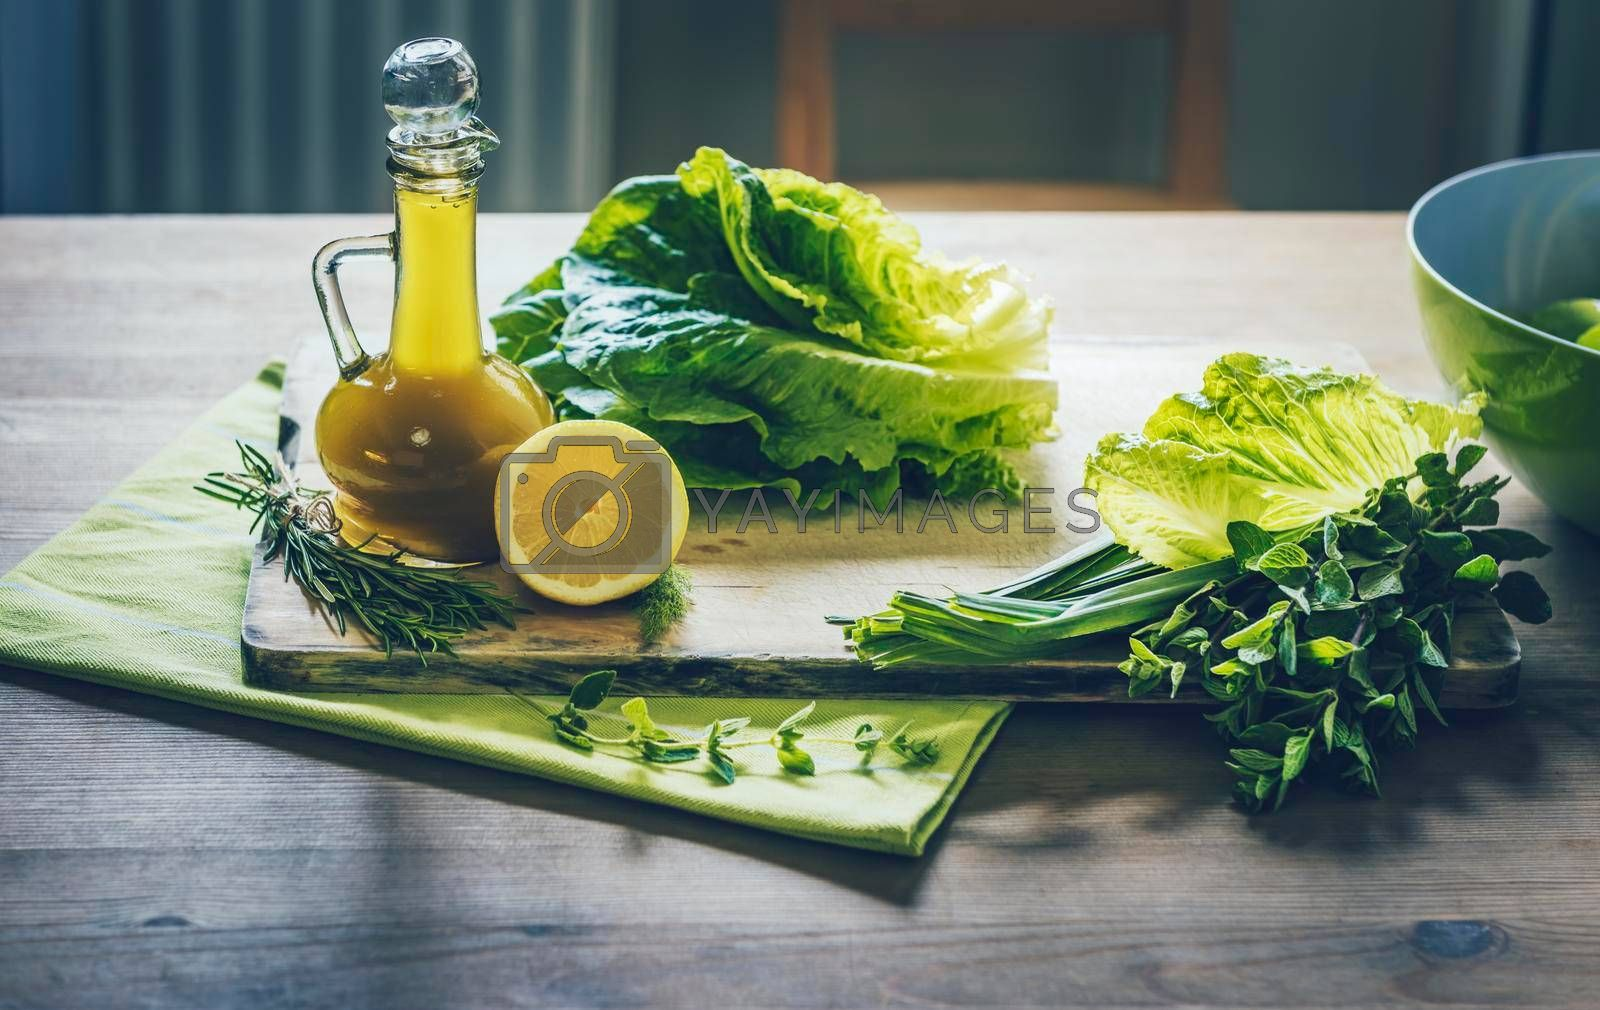 Food Still Life. Tasty Fresh Ingredients for a Green Salad with Olive Oil Dressing. Organic Nutrition. Dieting and Healthy Eating Concept.